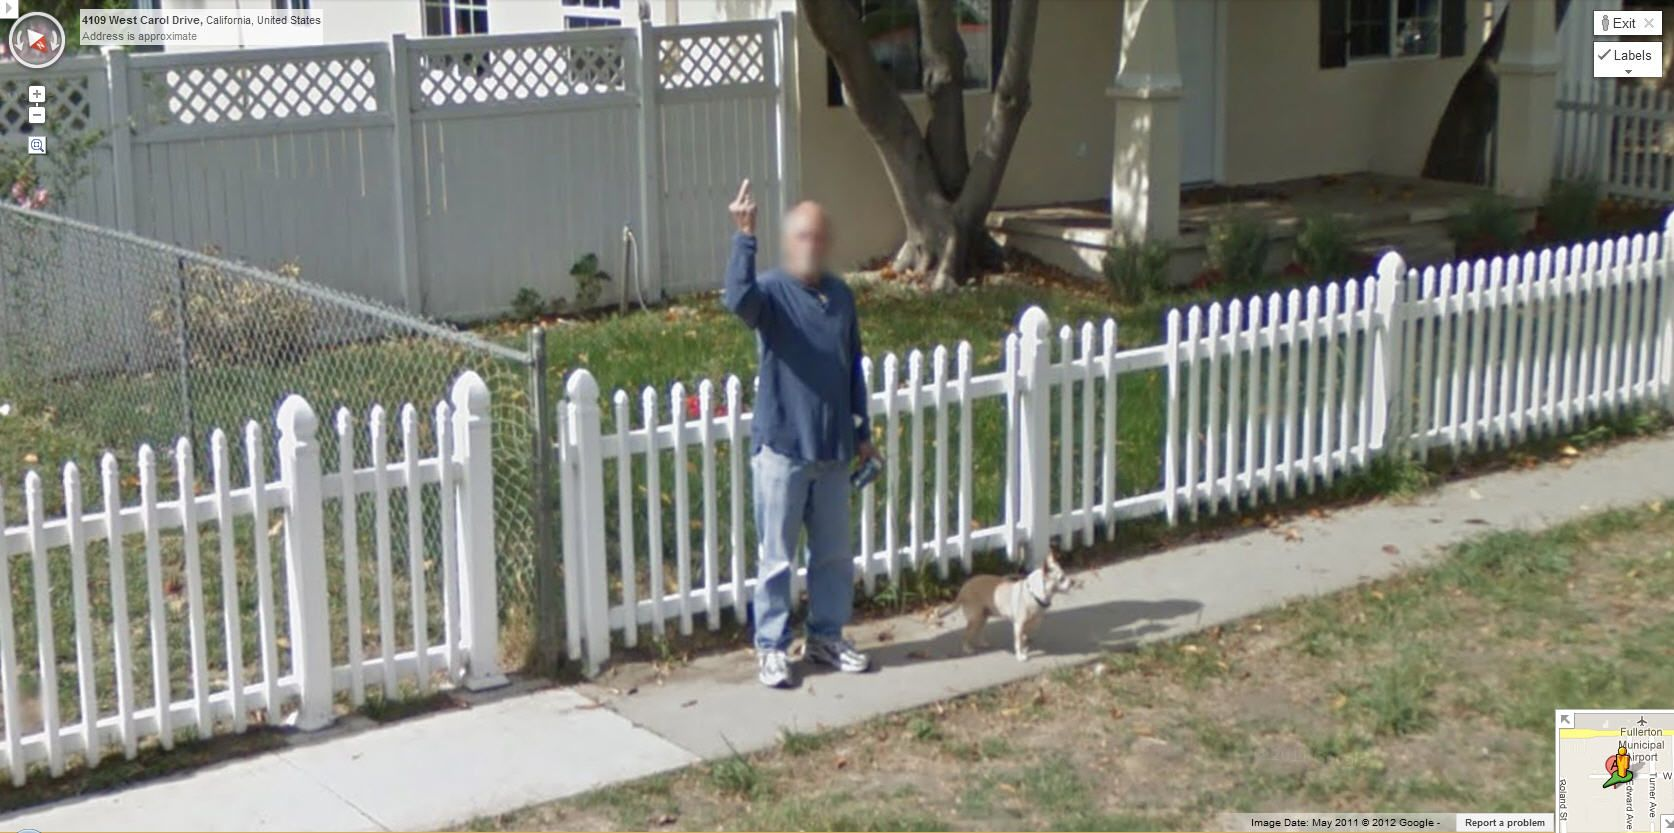 Odd google maps street view picture